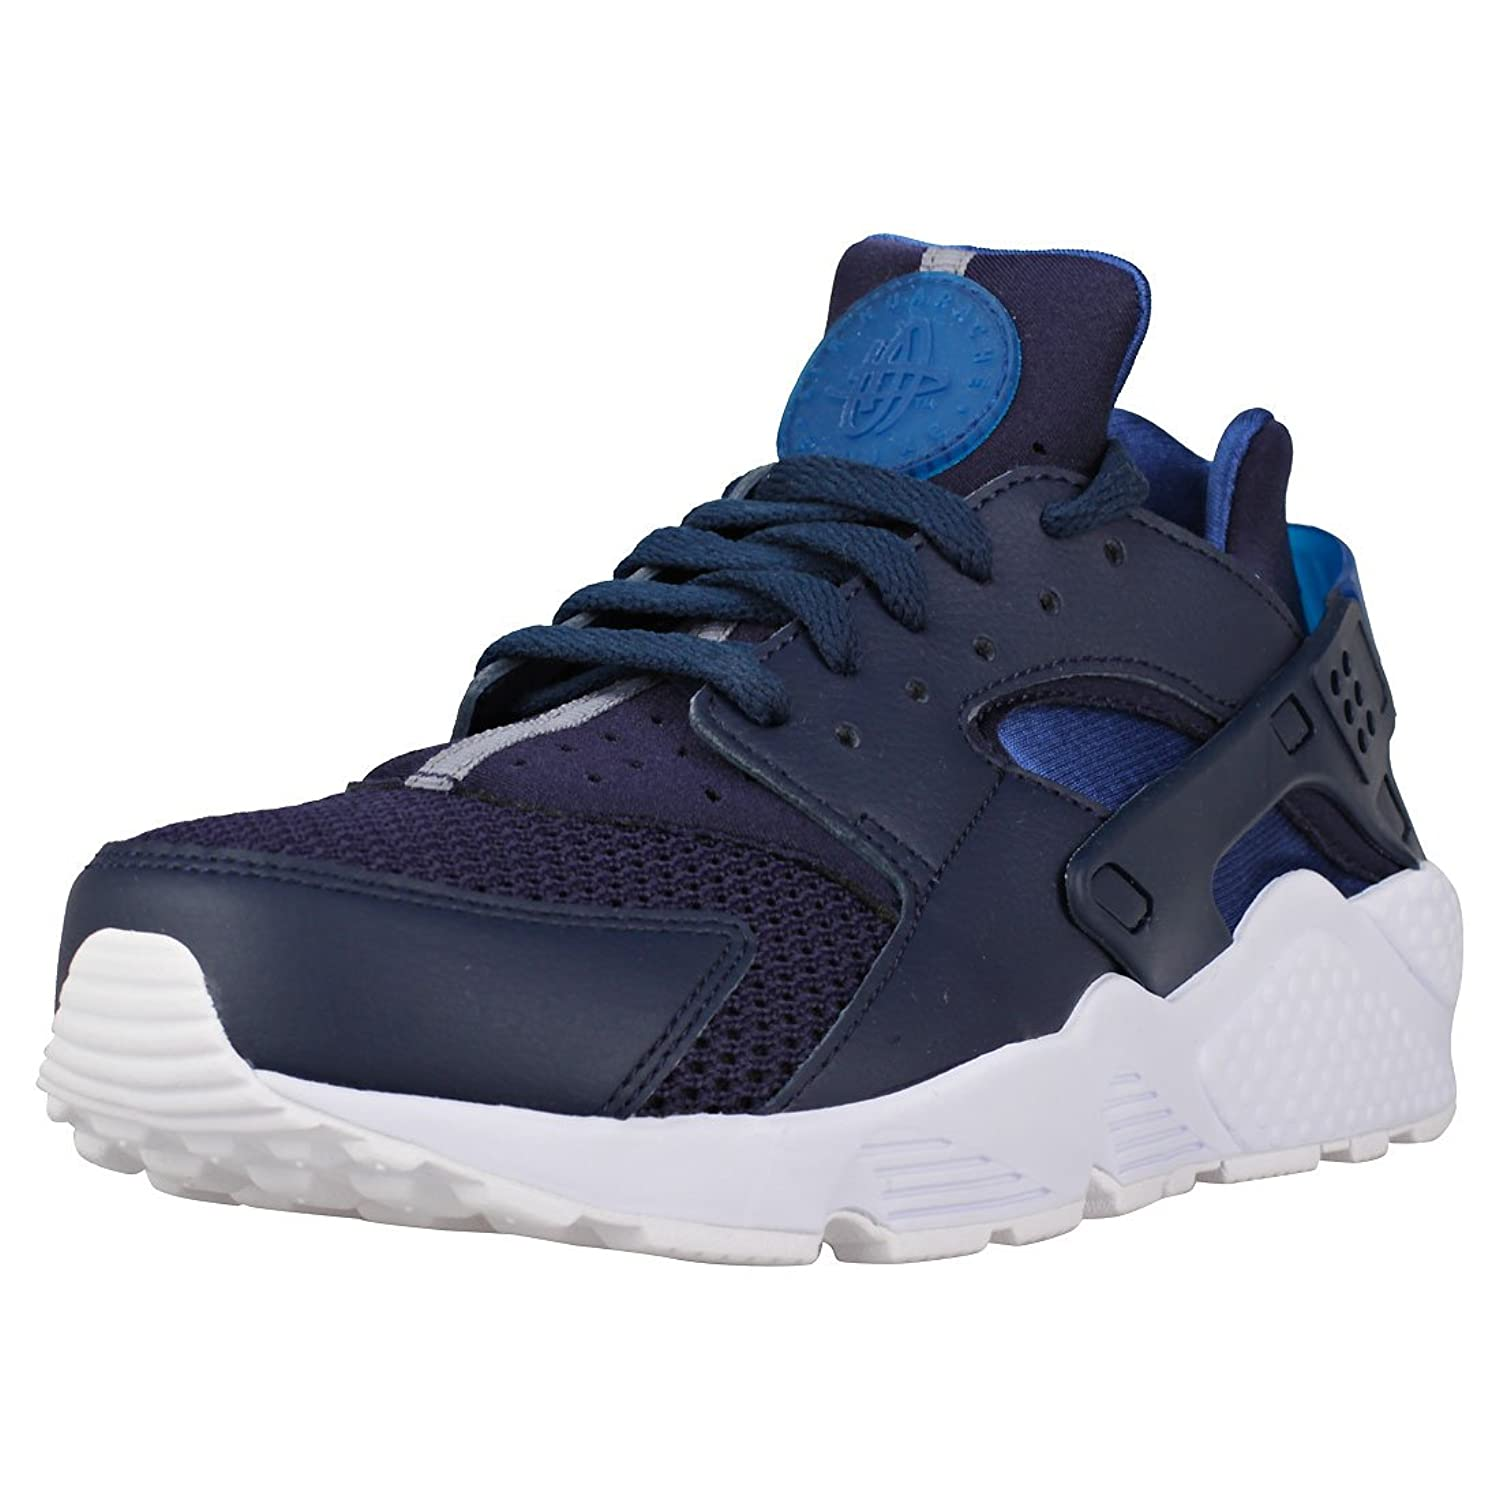 NIKE Mens Air Huarache Fashion Sneakers B07CG8N1Q3 10.5 D(M) US